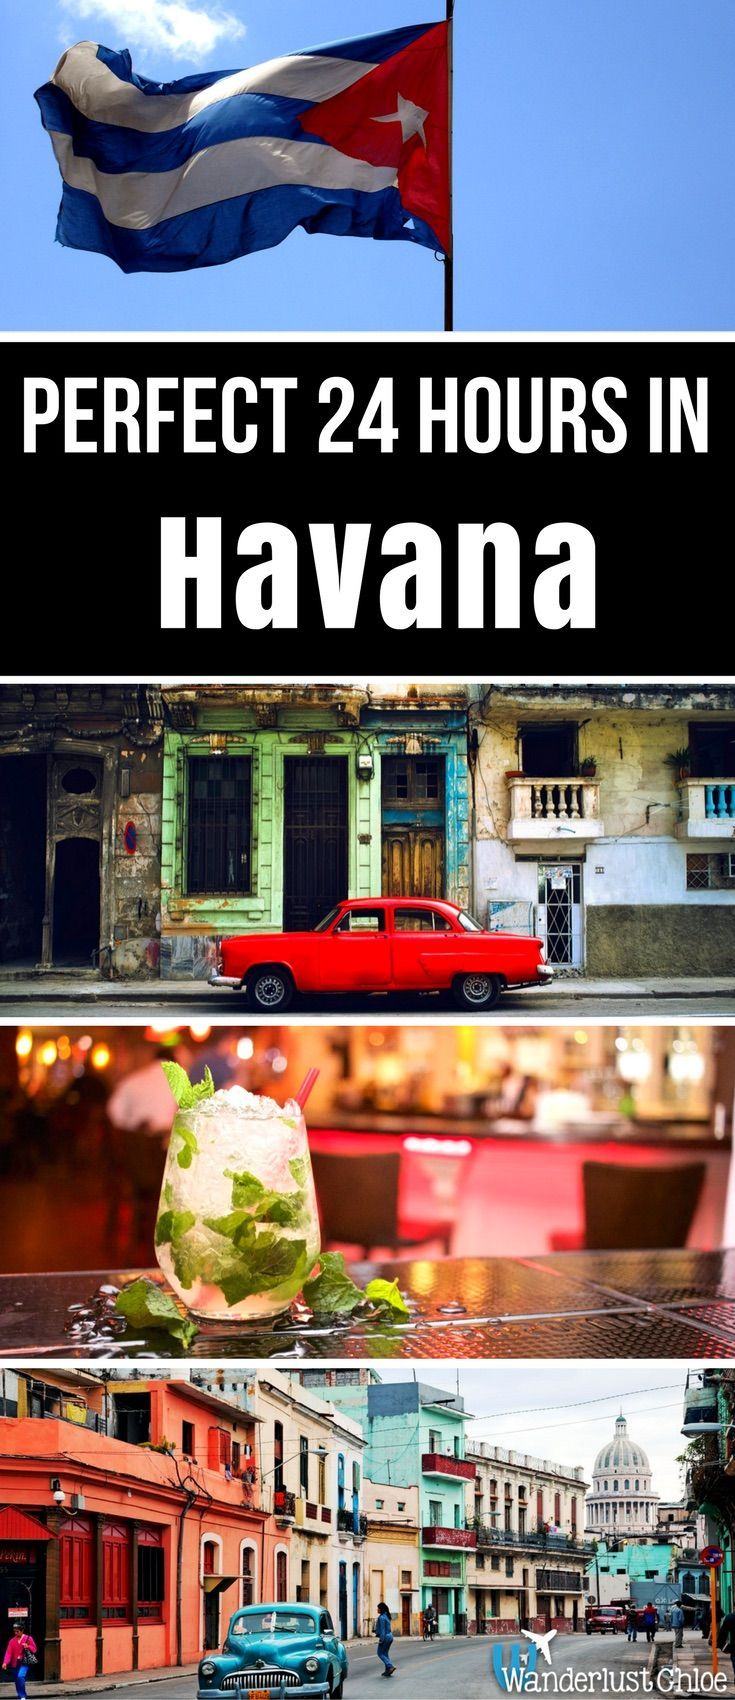 The Perfect 24 Hours In Havana, Cuba From visiting the amazing markets to trying a Havana Club mojito to checking out the vintage cars and architecture, there's plenty to see and do in Havana. http://www.wanderlustchloe.com/the-perfect-24-hours-in-havana-cuba/